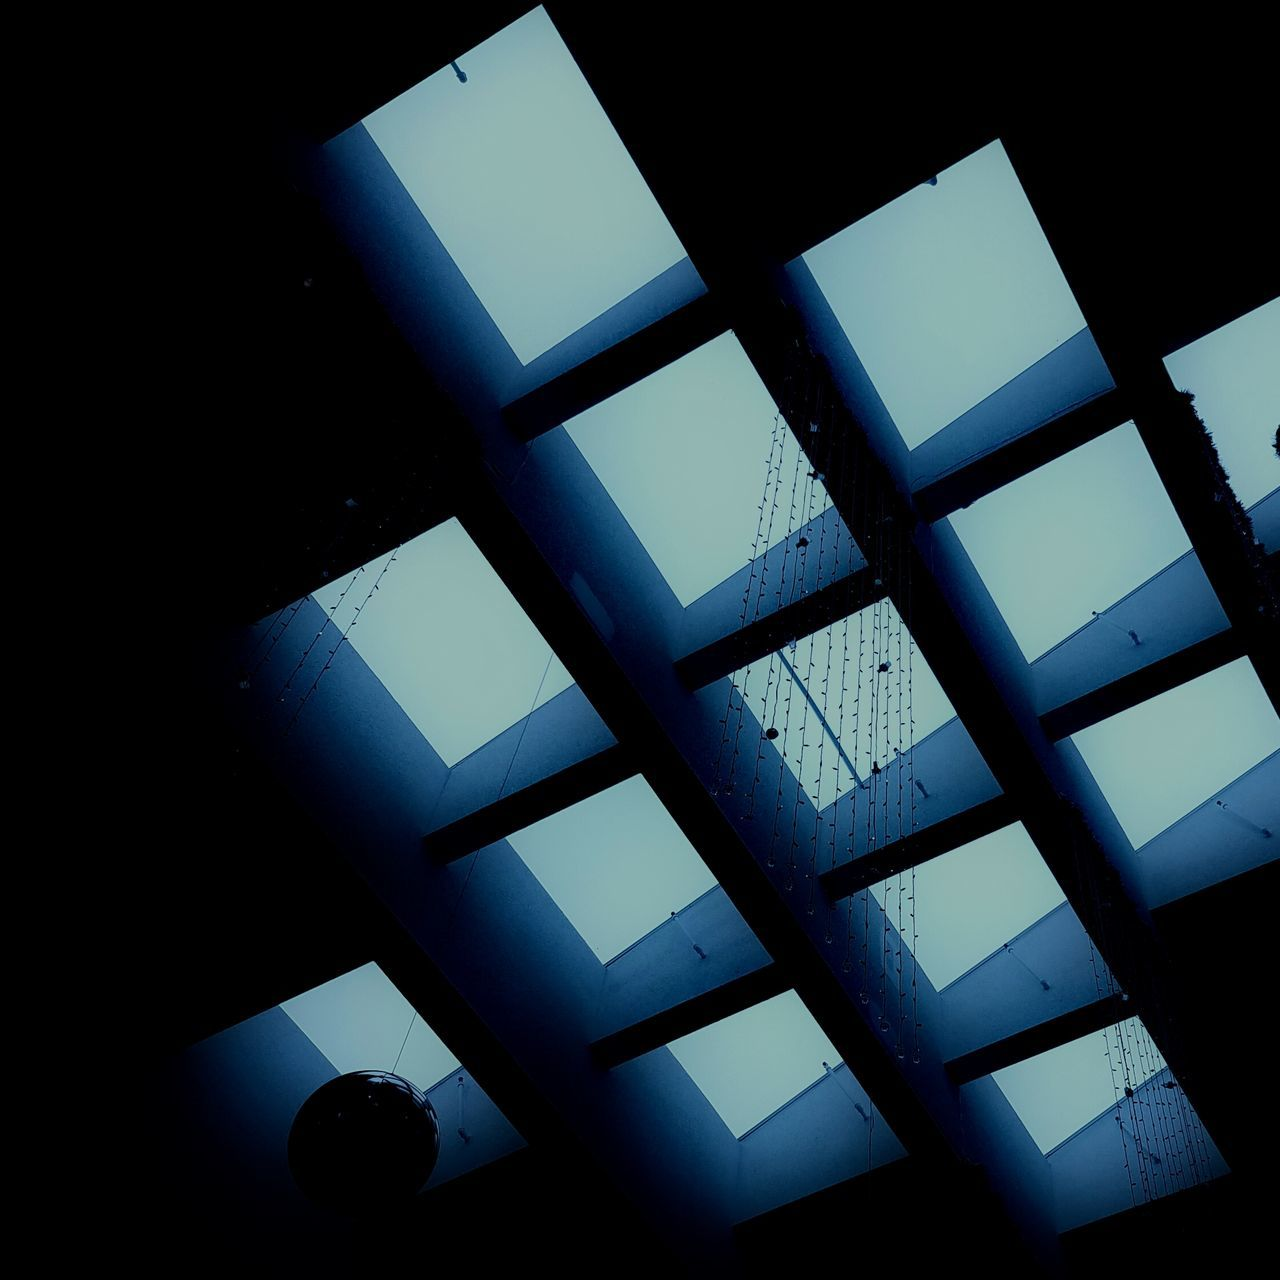 Abstraction Abstract Photography Backgrounds Contrast Darkness And Light Design Geometric Shape Indoors  No People Skylights